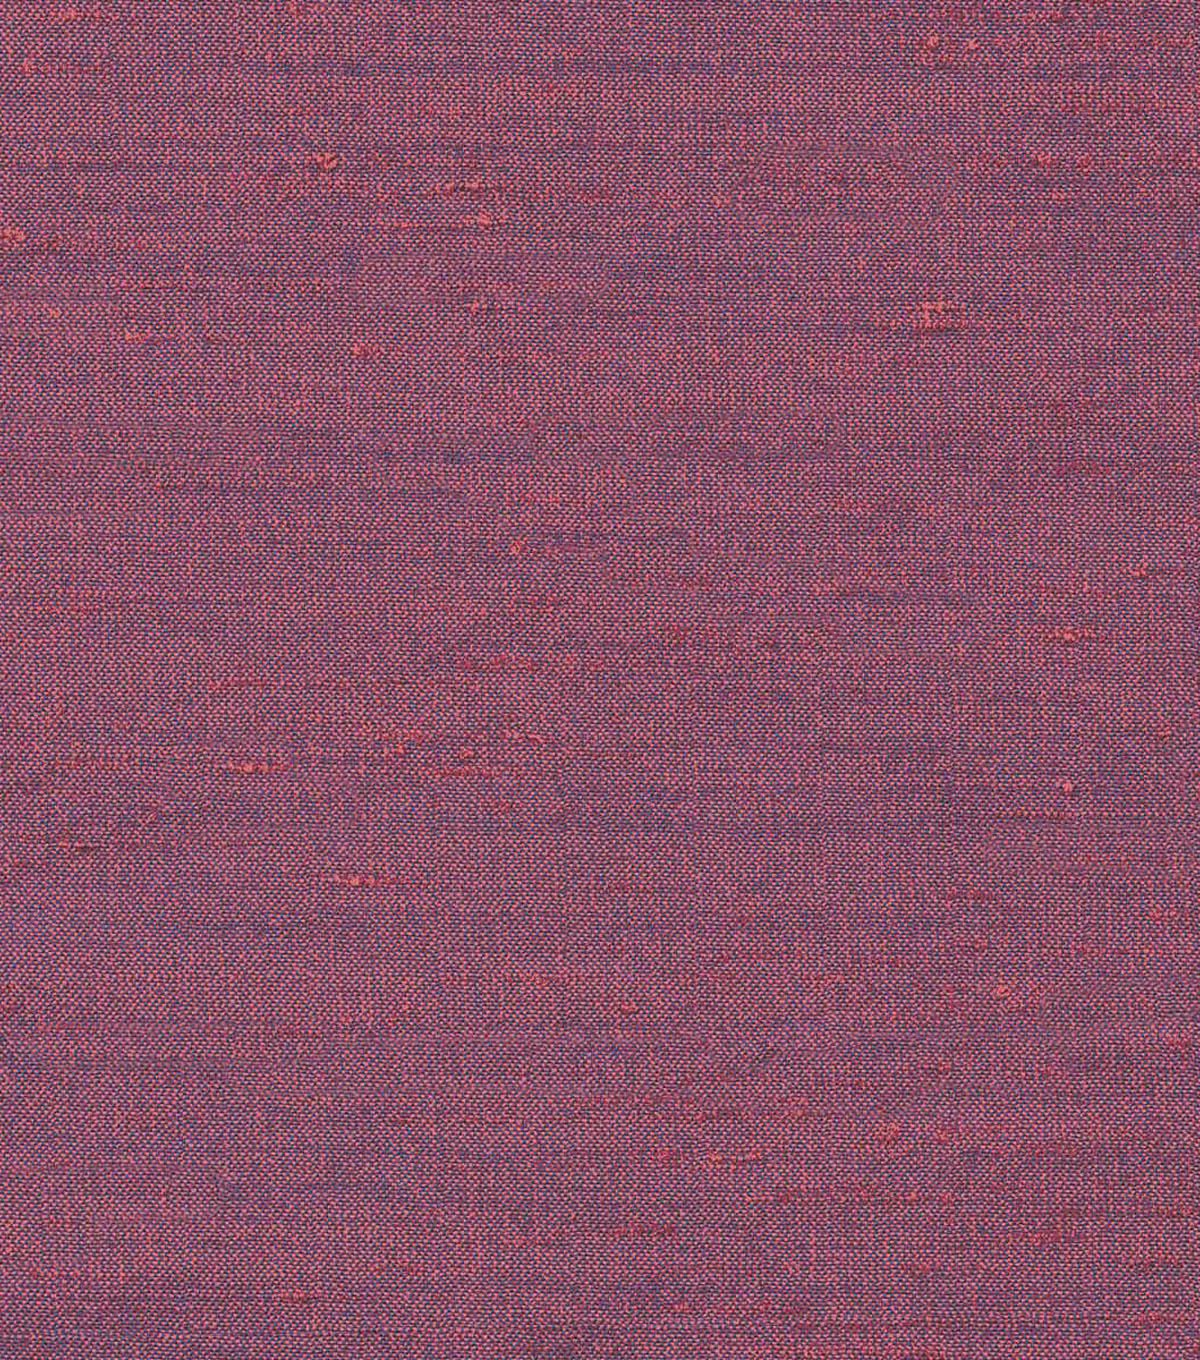 "Home Decor 8""x8"" Fabric Swatch-HGTV Home Dazzler Berry"